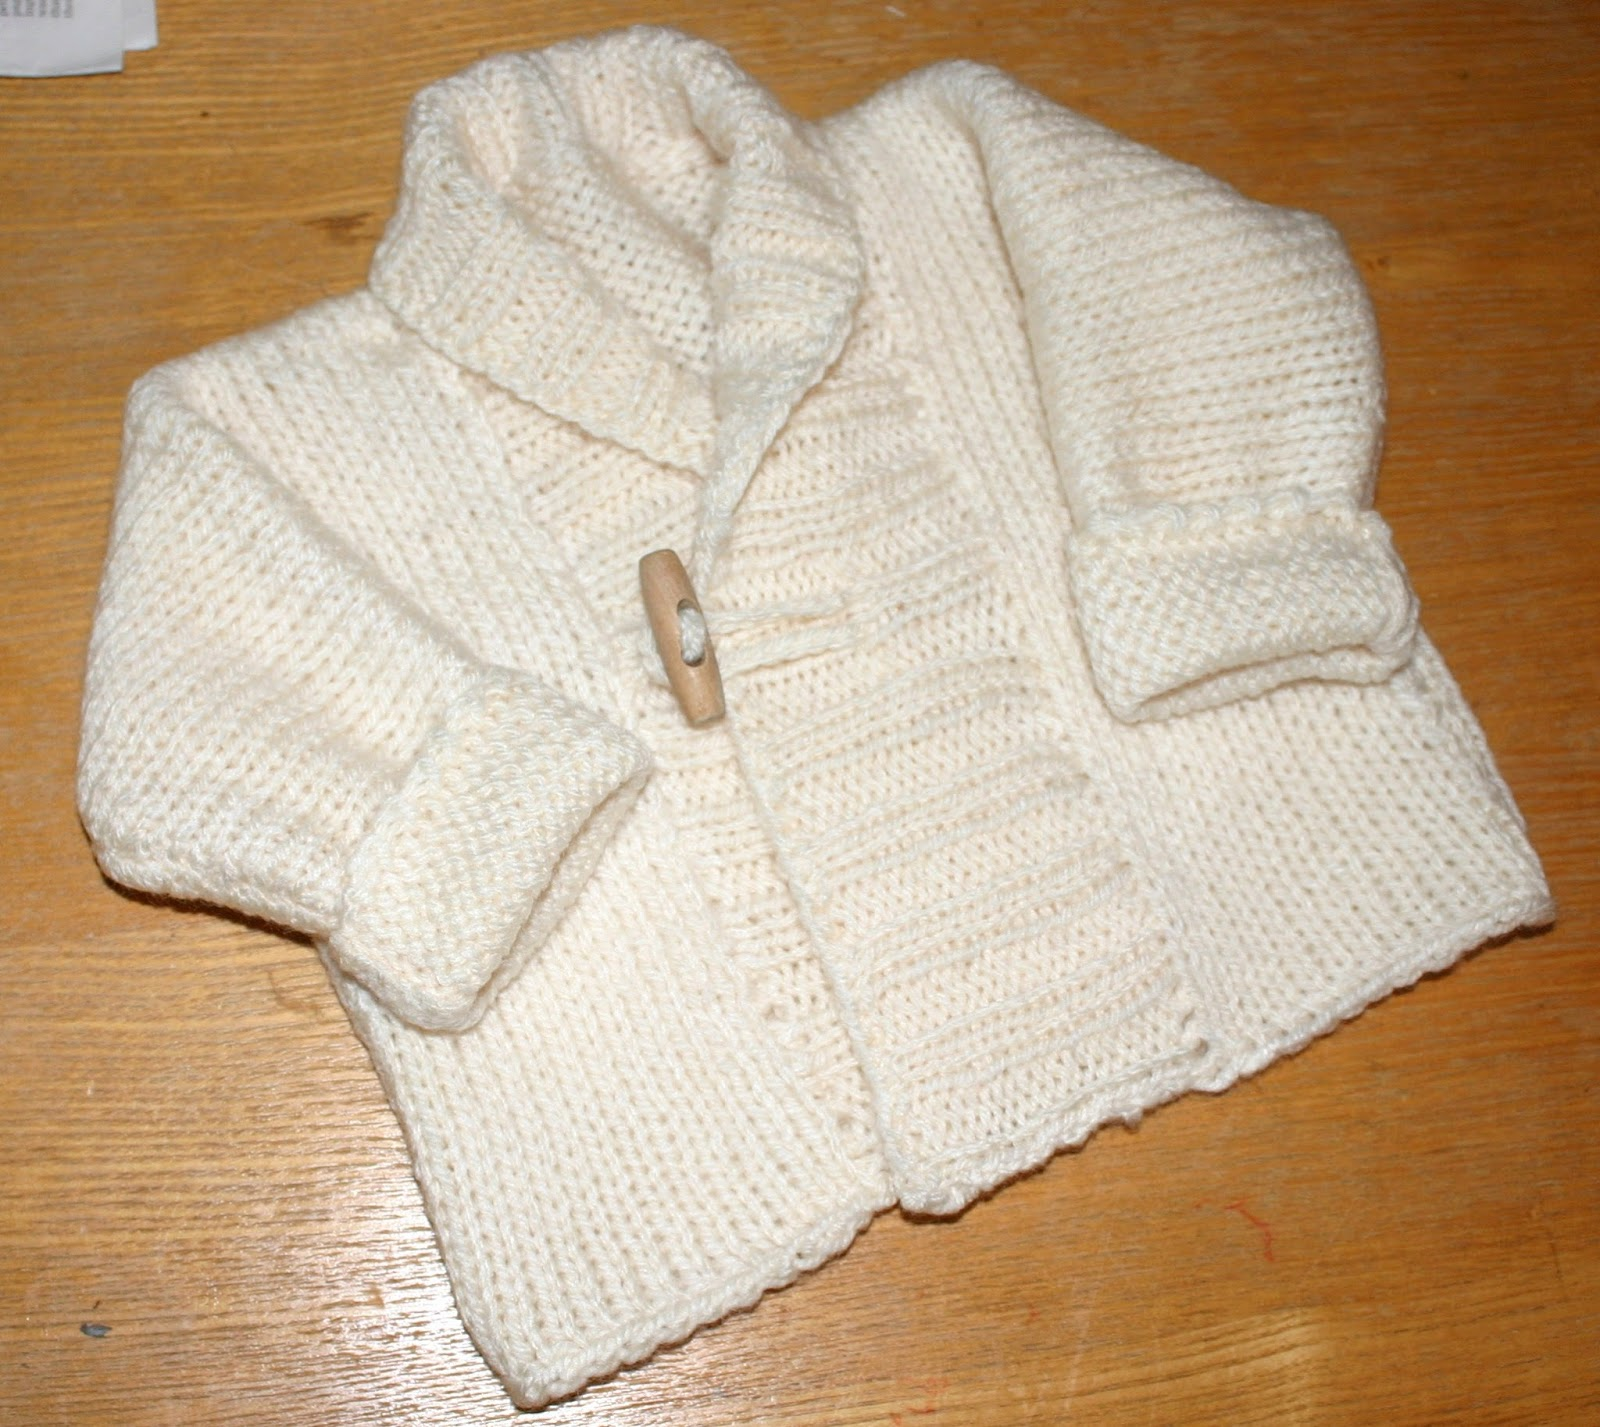 Knitting Patterns Uk : jacket in aran weight wool/acrylic blend. It is a very simple pattern ...